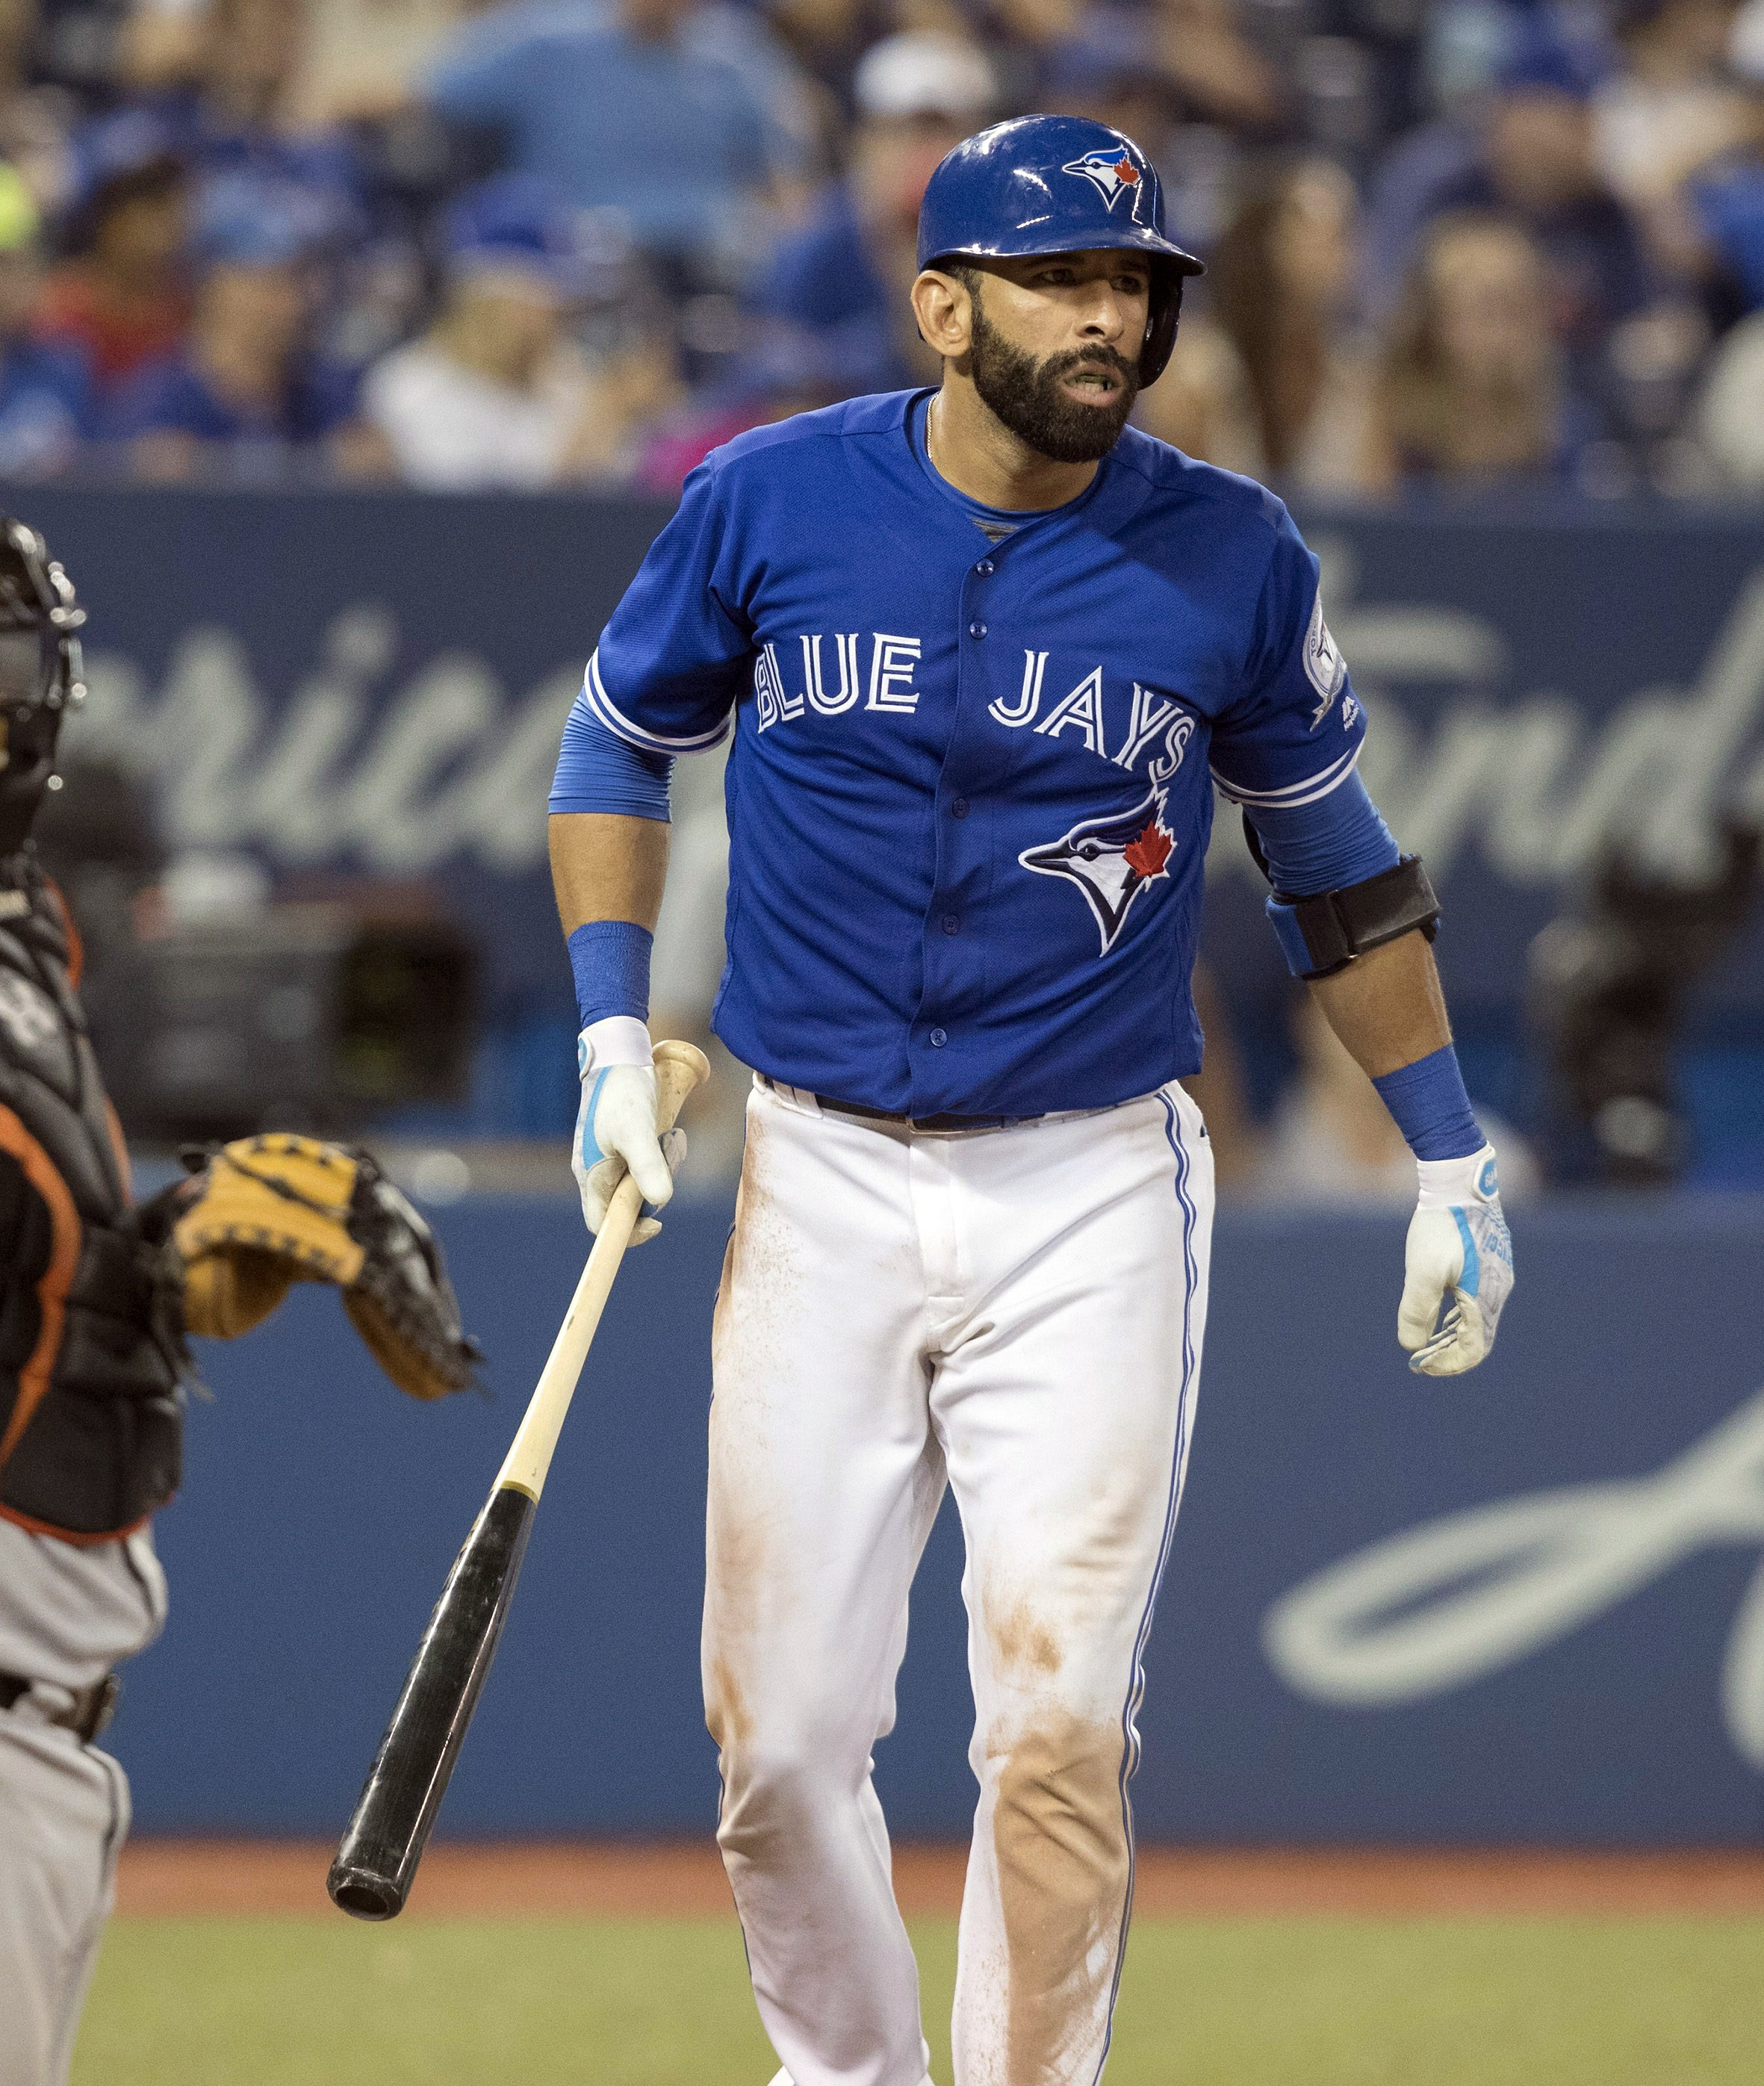 Toronto Blue Jays' Jose Bautista reacts after a called strike in the 12th inning of a baseball game against the Baltimore Orioles in Toronto, Sunday, July 31, 2016. (Fred Thornhill/The Canadian Press via AP)